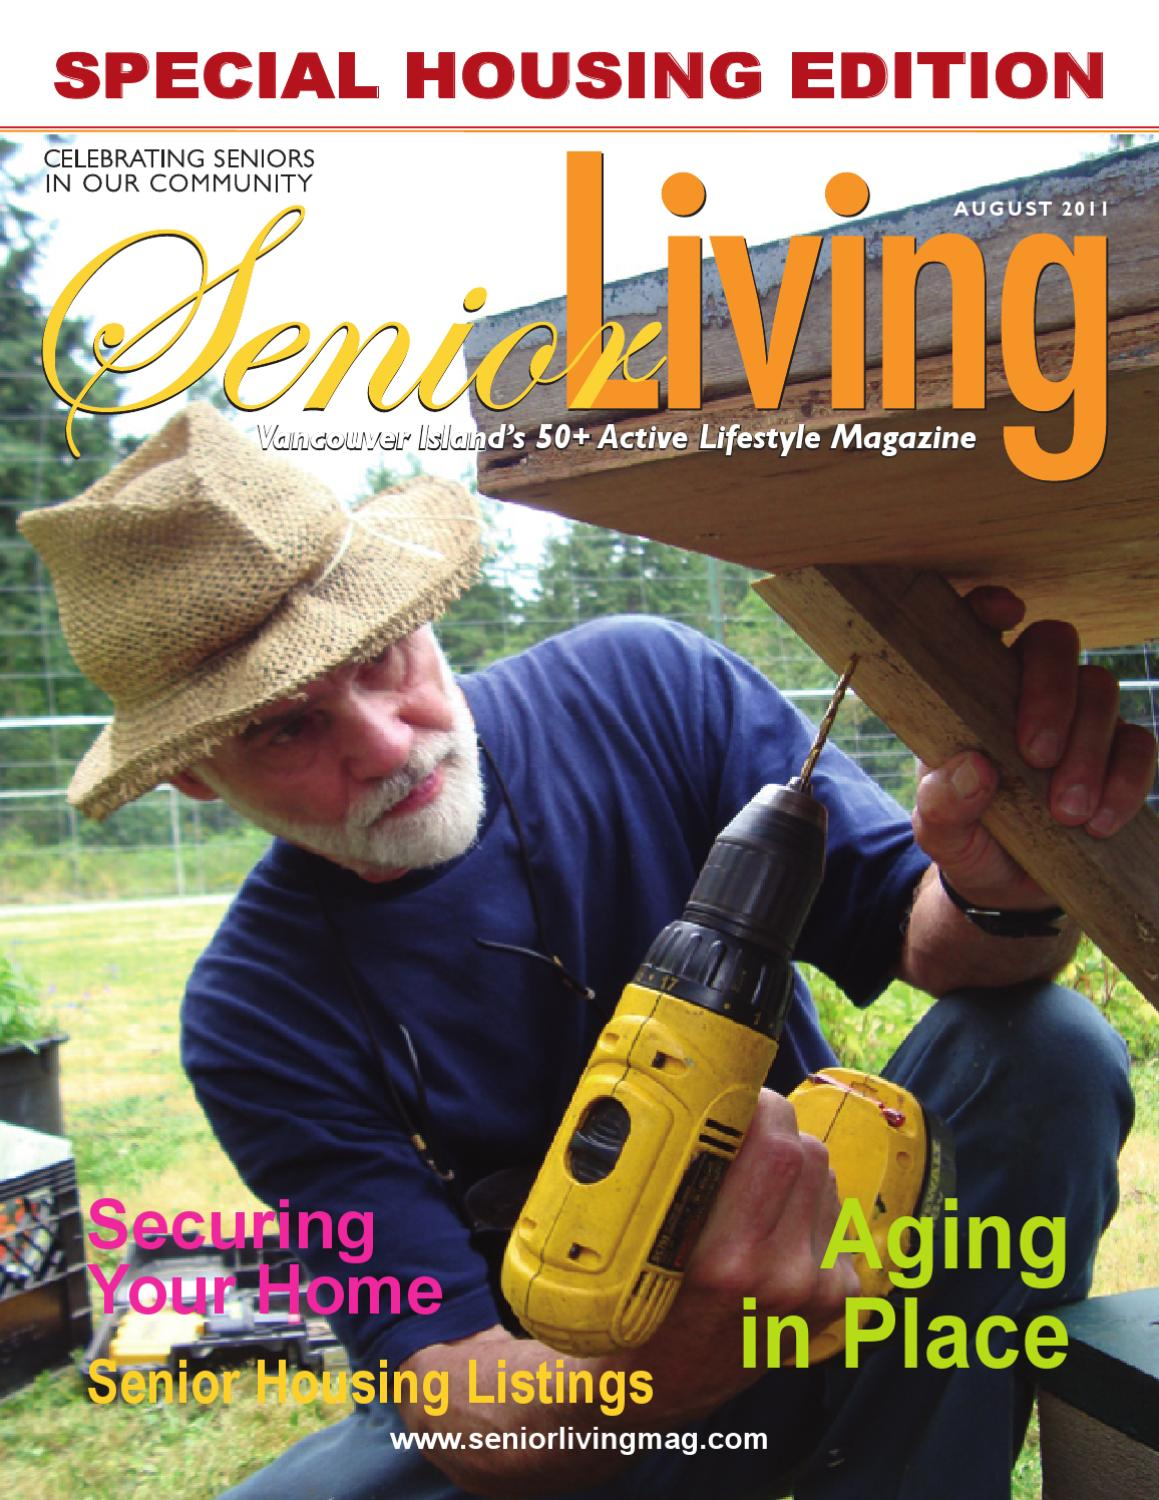 Senior Living Magazine Island Edition August 2011 By